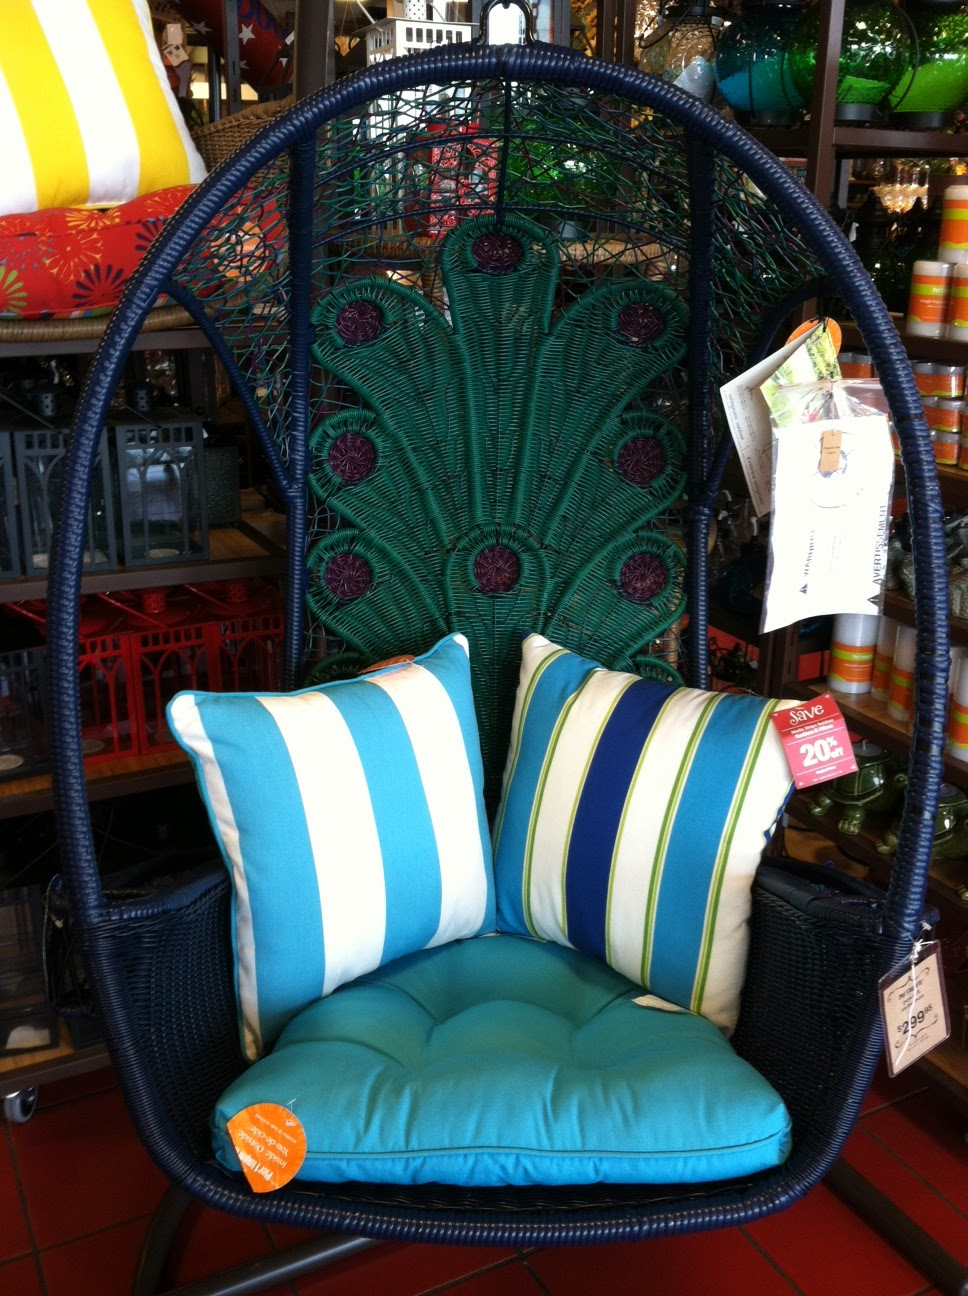 Thicket and thistle - Pier one peacock chair ...